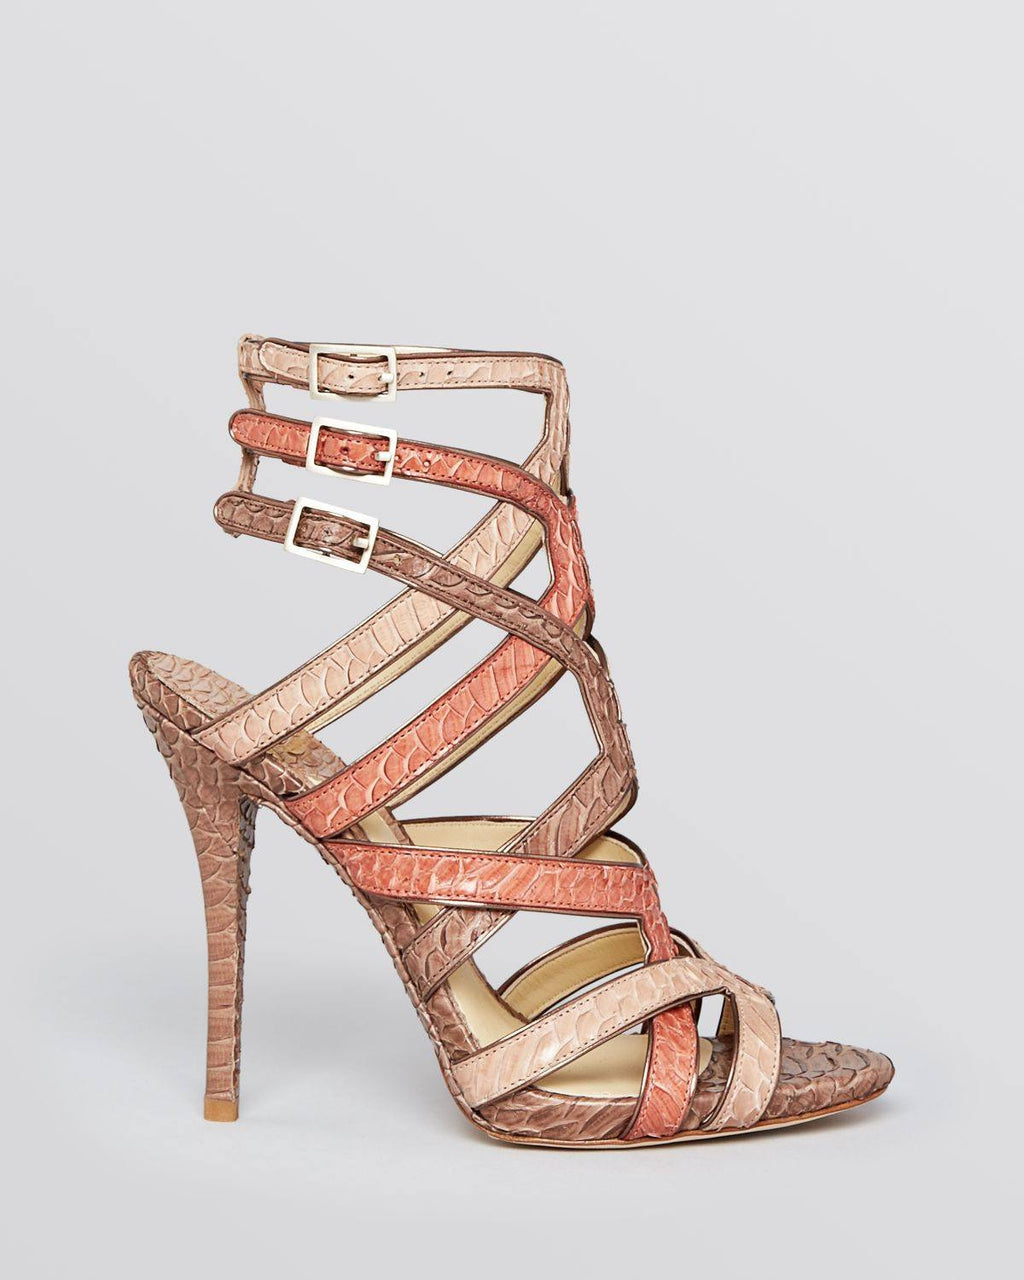 B Brian Atwood Sandals - Carbinia High Heel-B BRIAN ATWOOD-Fashionbarn shop